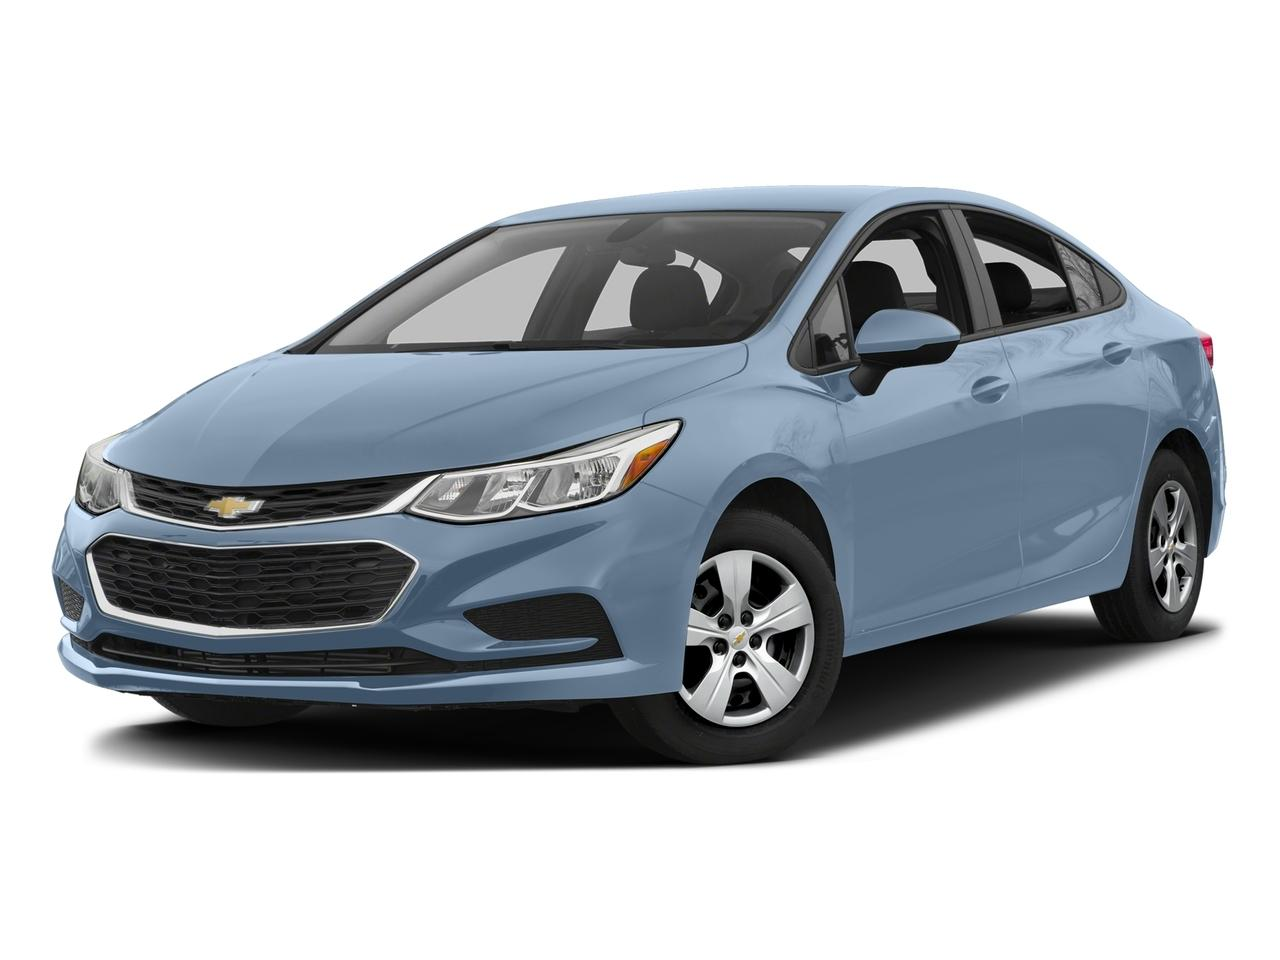 2017 Chevrolet Cruze Vehicle Photo in Tulsa, OK 74133